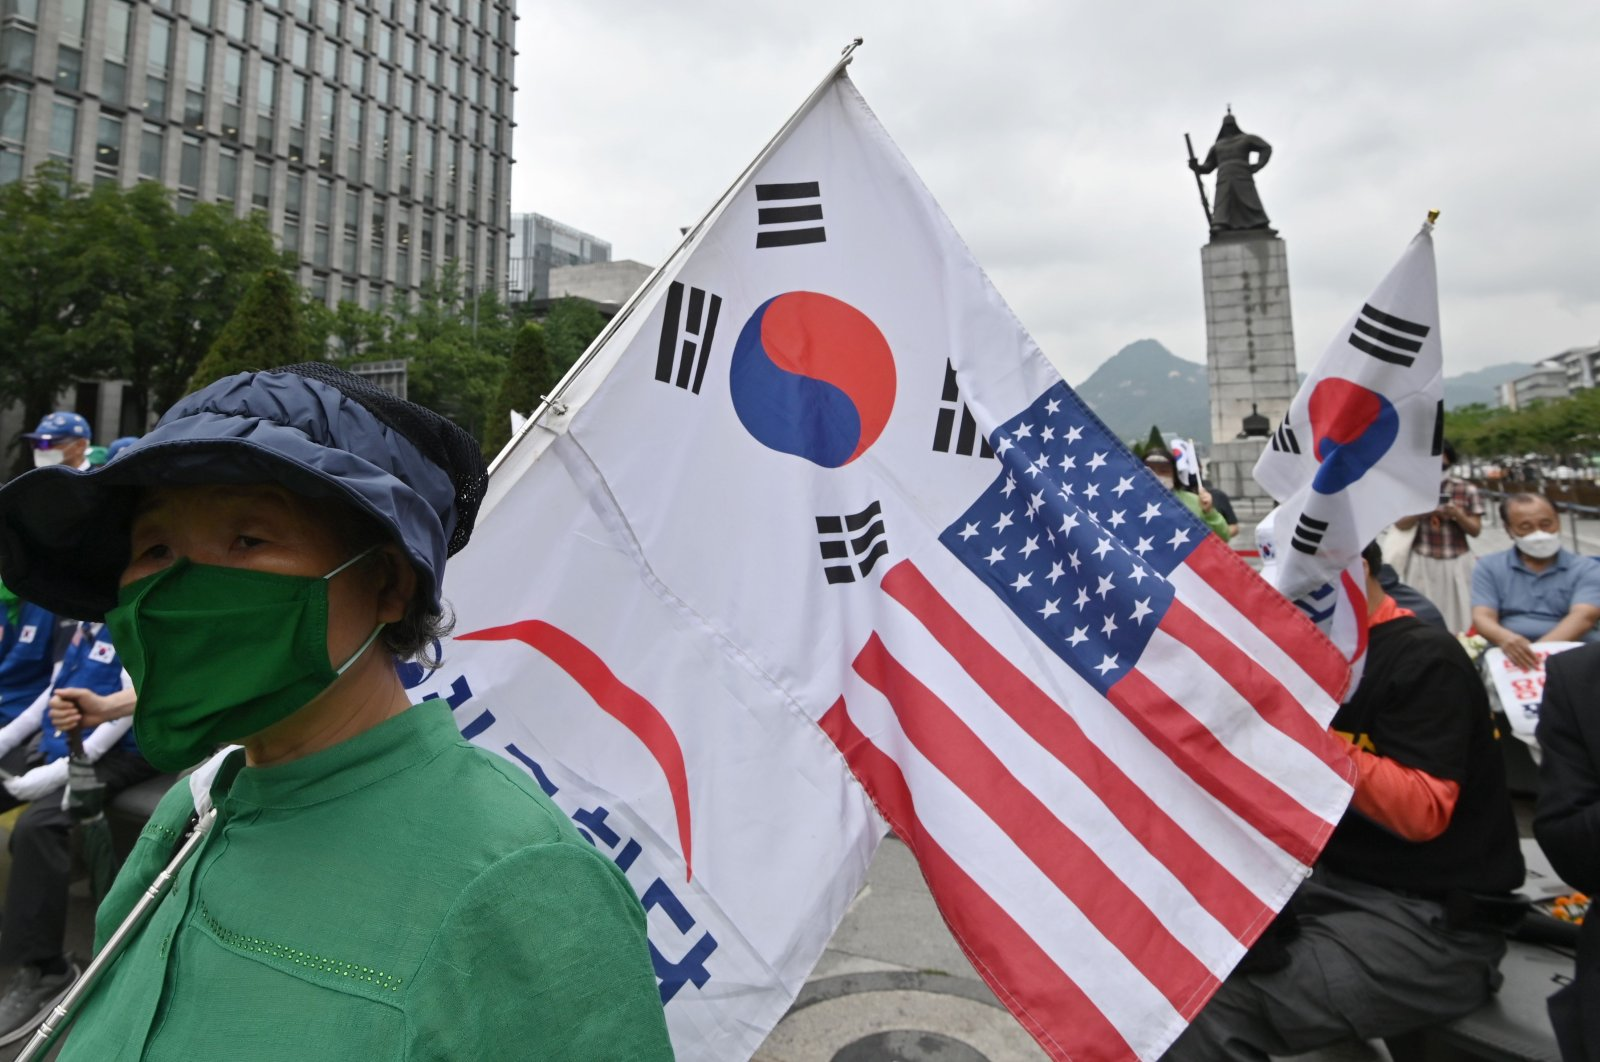 A South Korean woman holds flags of South Korea and the U.S. during a rally commemorating the 70th anniversary of the beginning of the Korean War in Seoul on June 25, 2020. (AFP Photo)